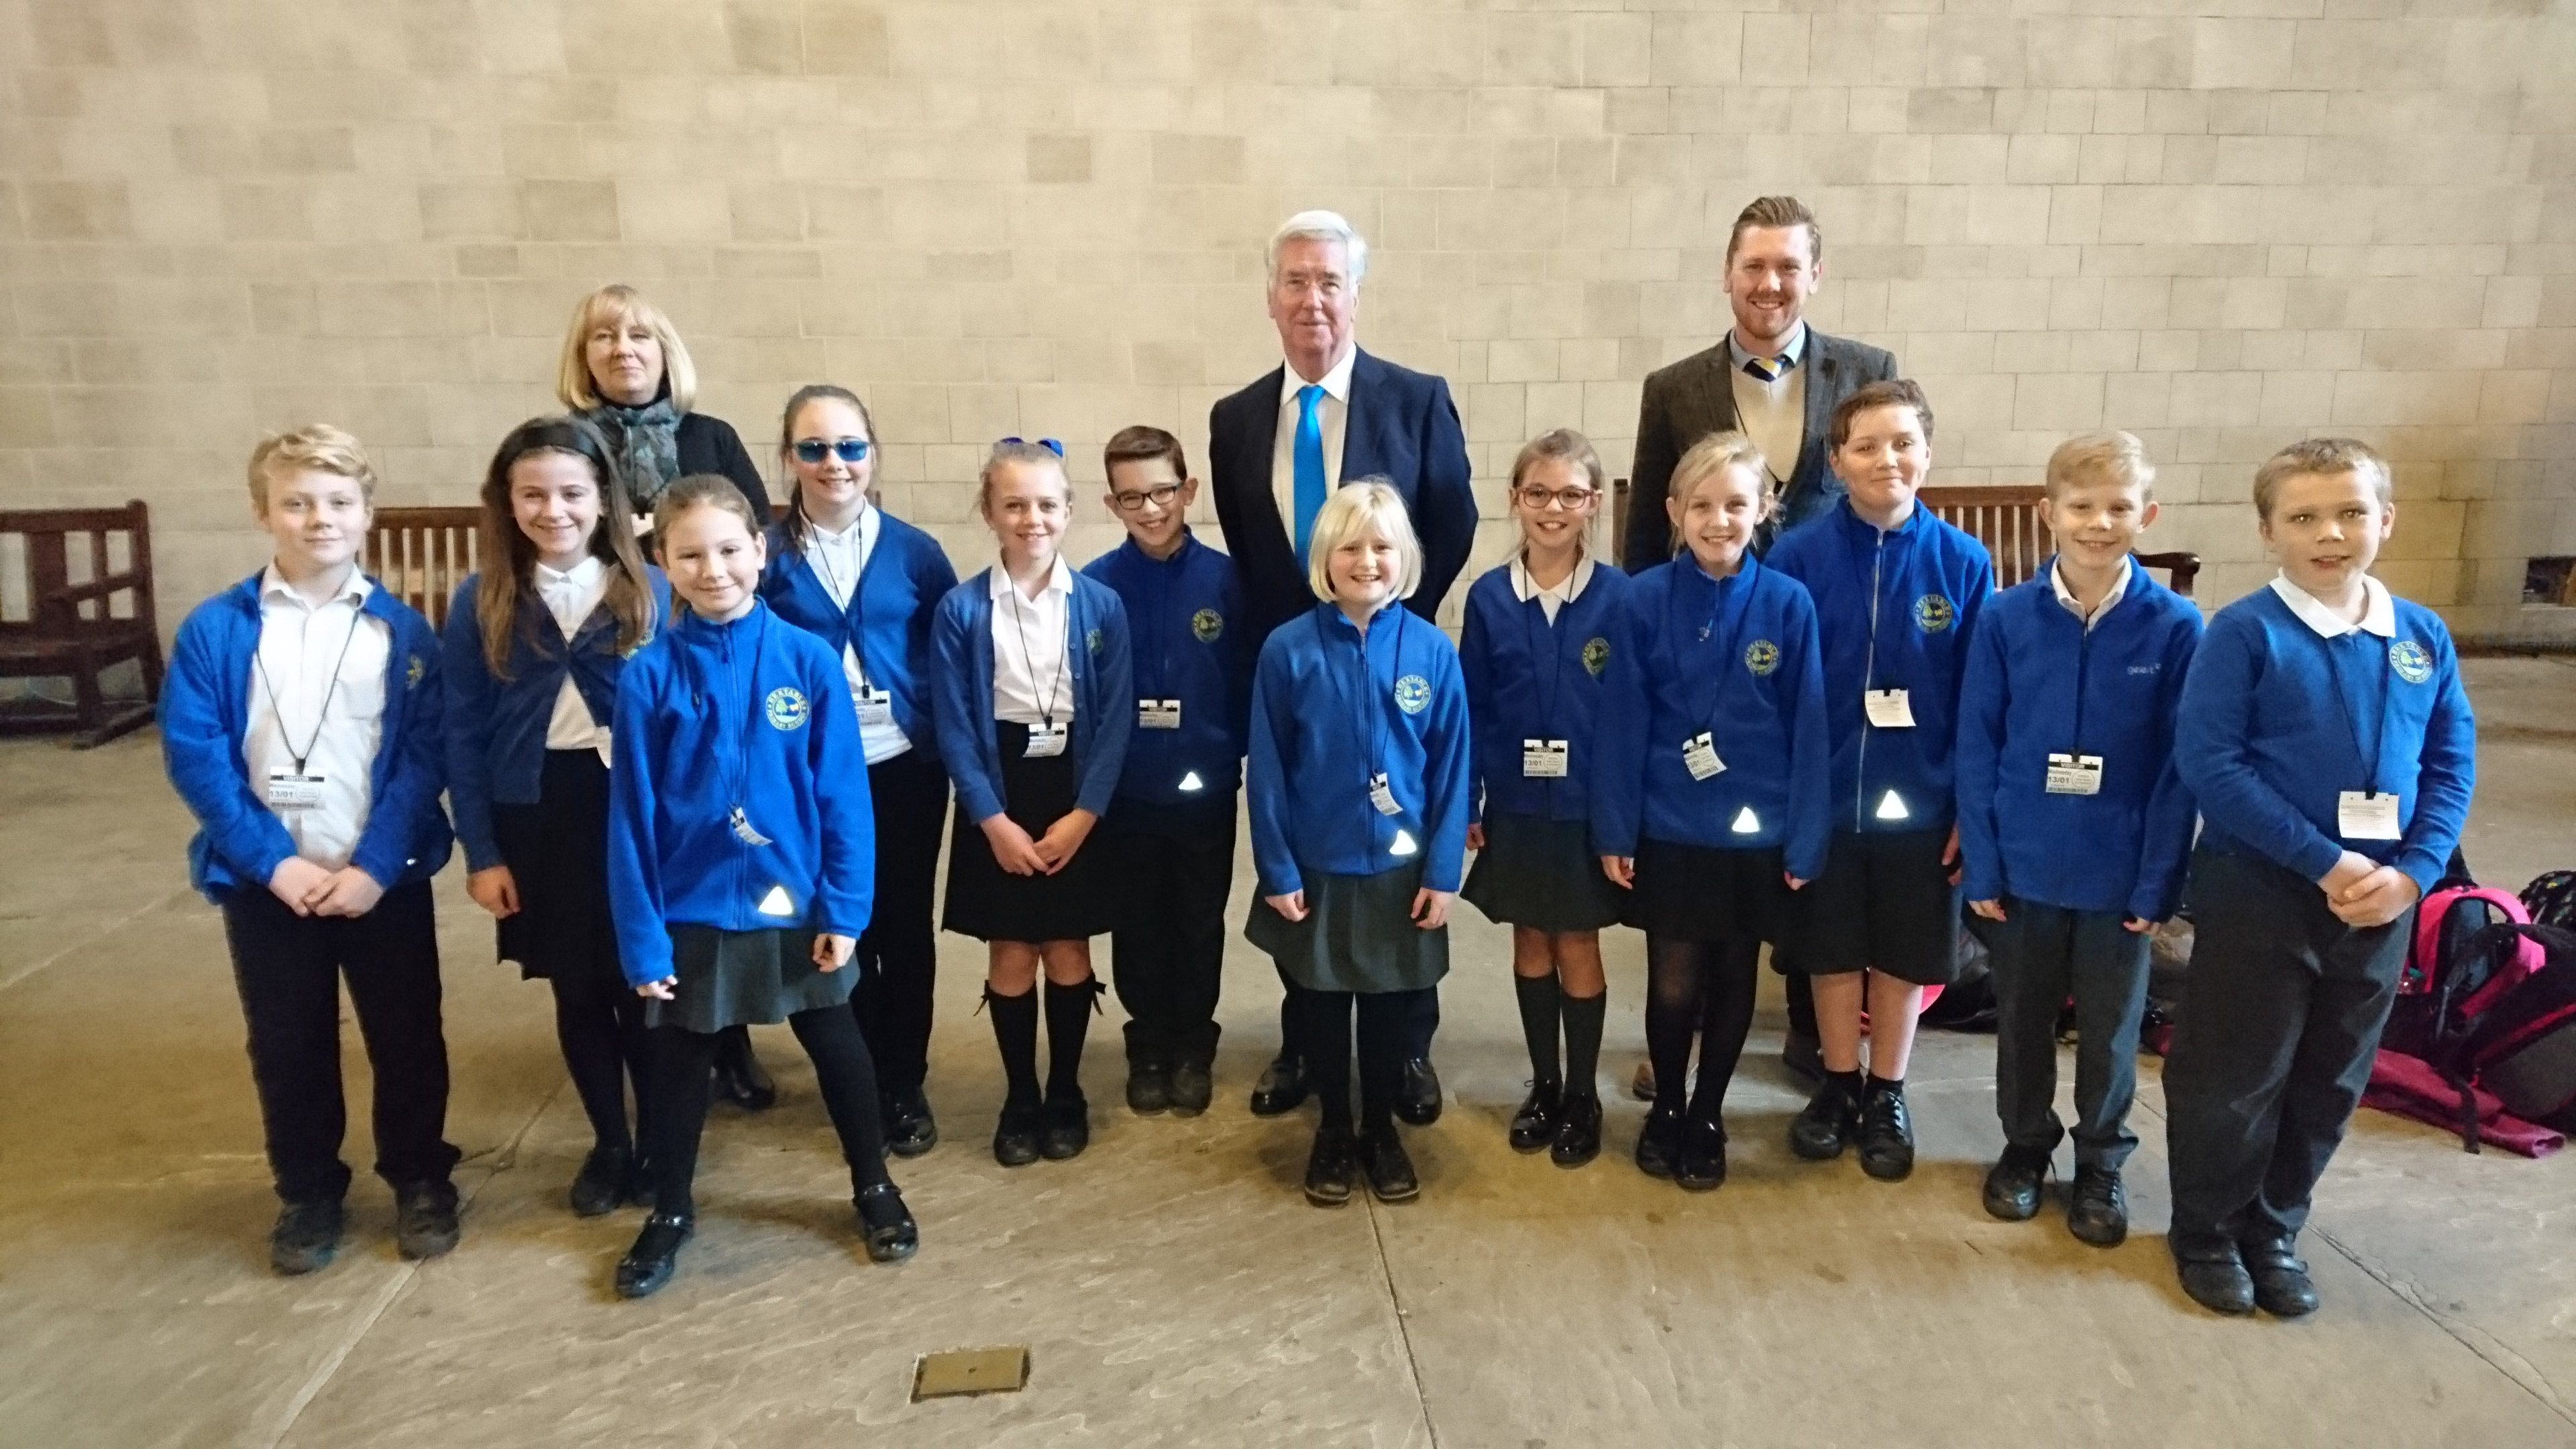 Michael welcoming pupils from Hextable Primary School to Parliament.